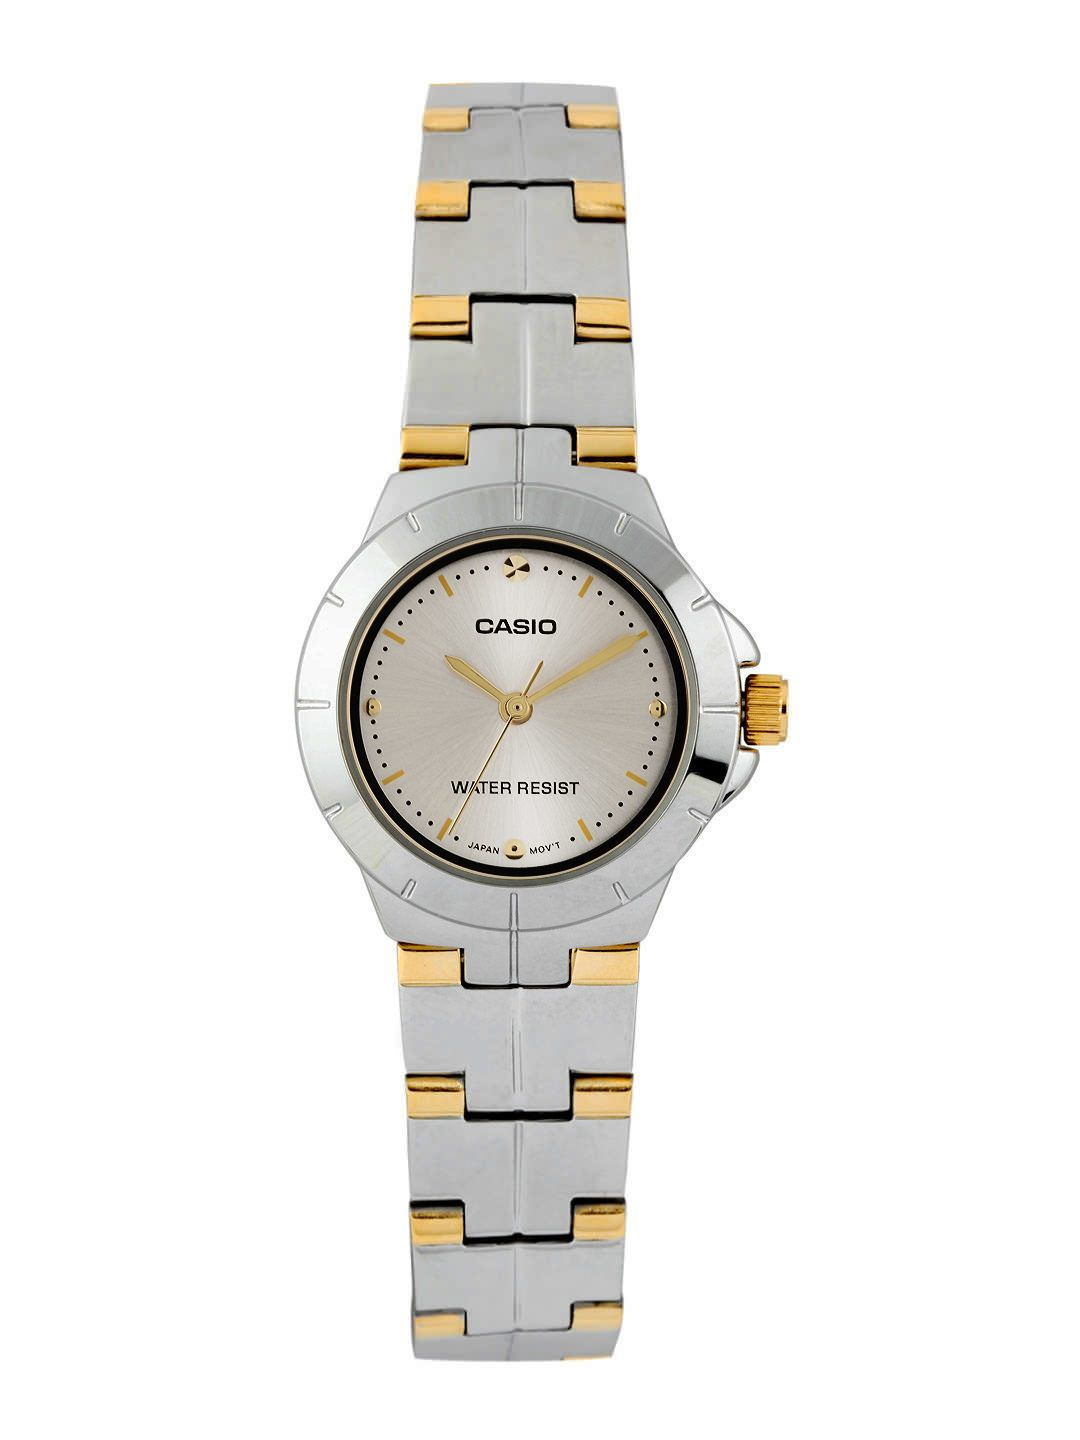 CASIO Women Silver-Toned Dial Watch A907